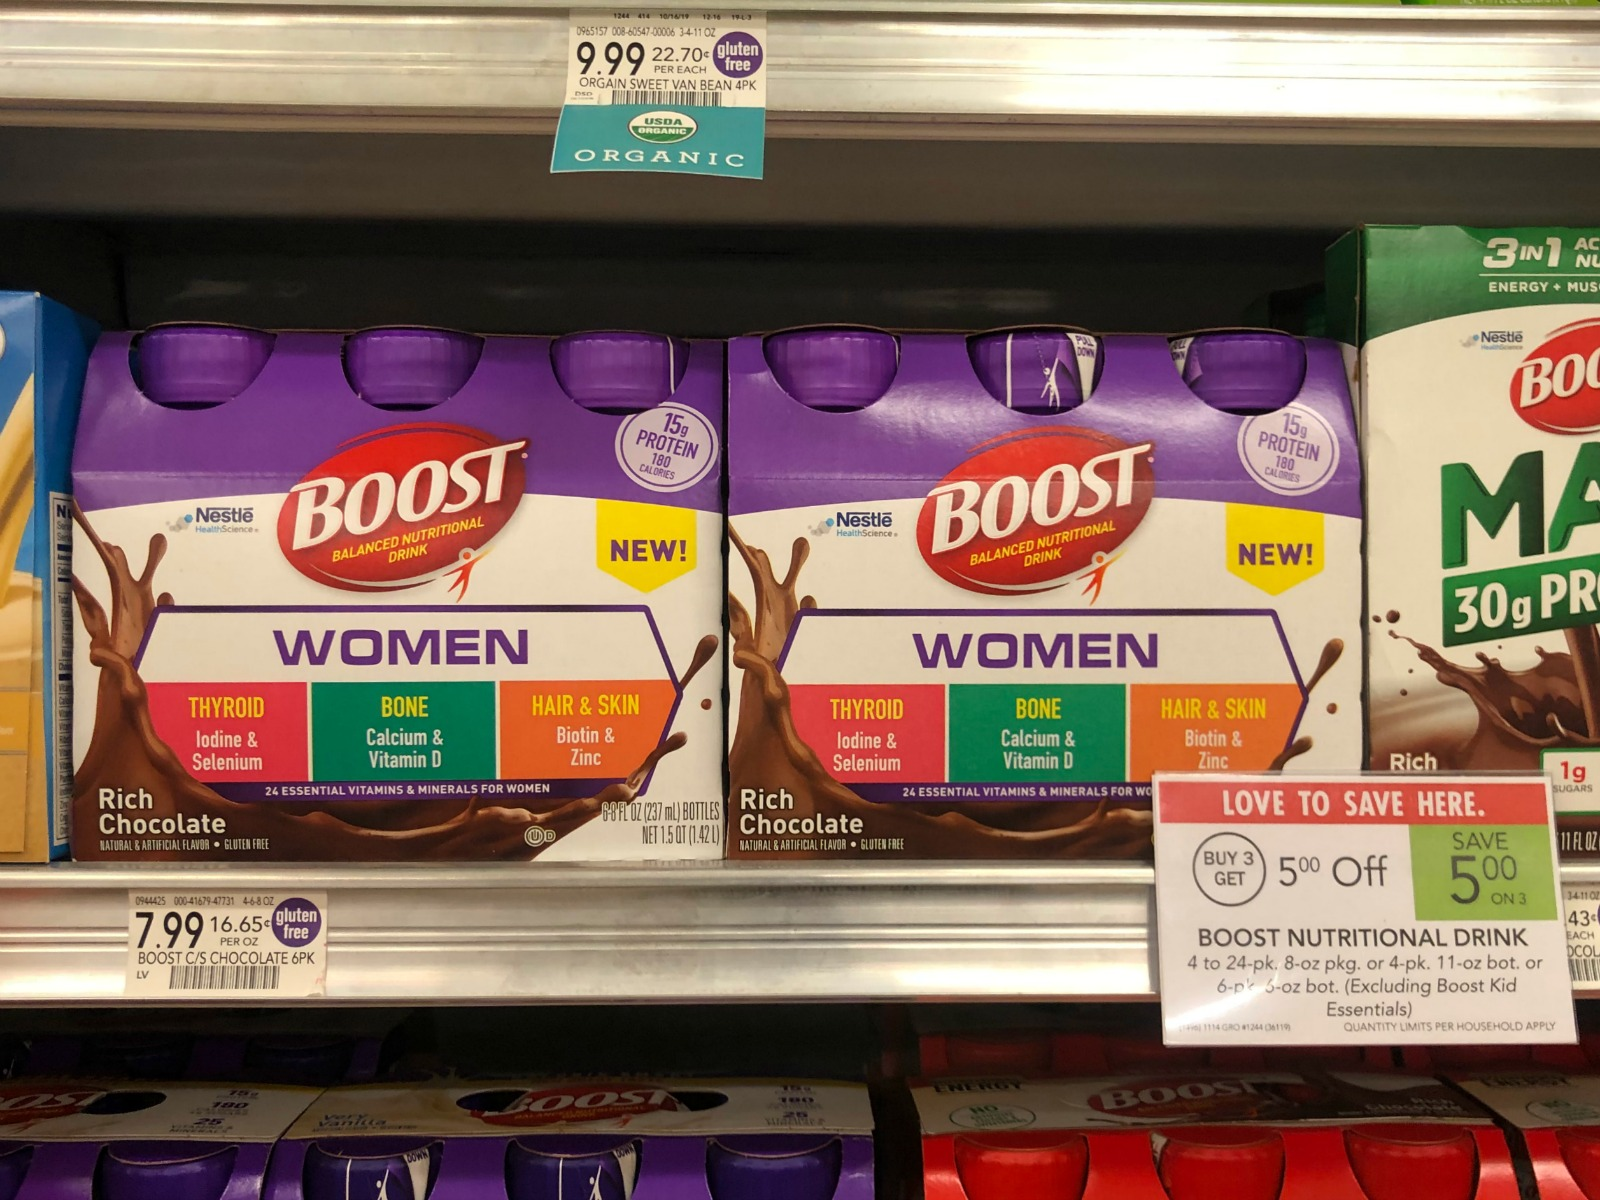 Try NEW BOOST® WOMEN Balanced Nutritional Drinks - Big Savings Available Now At Publix on I Heart Publix